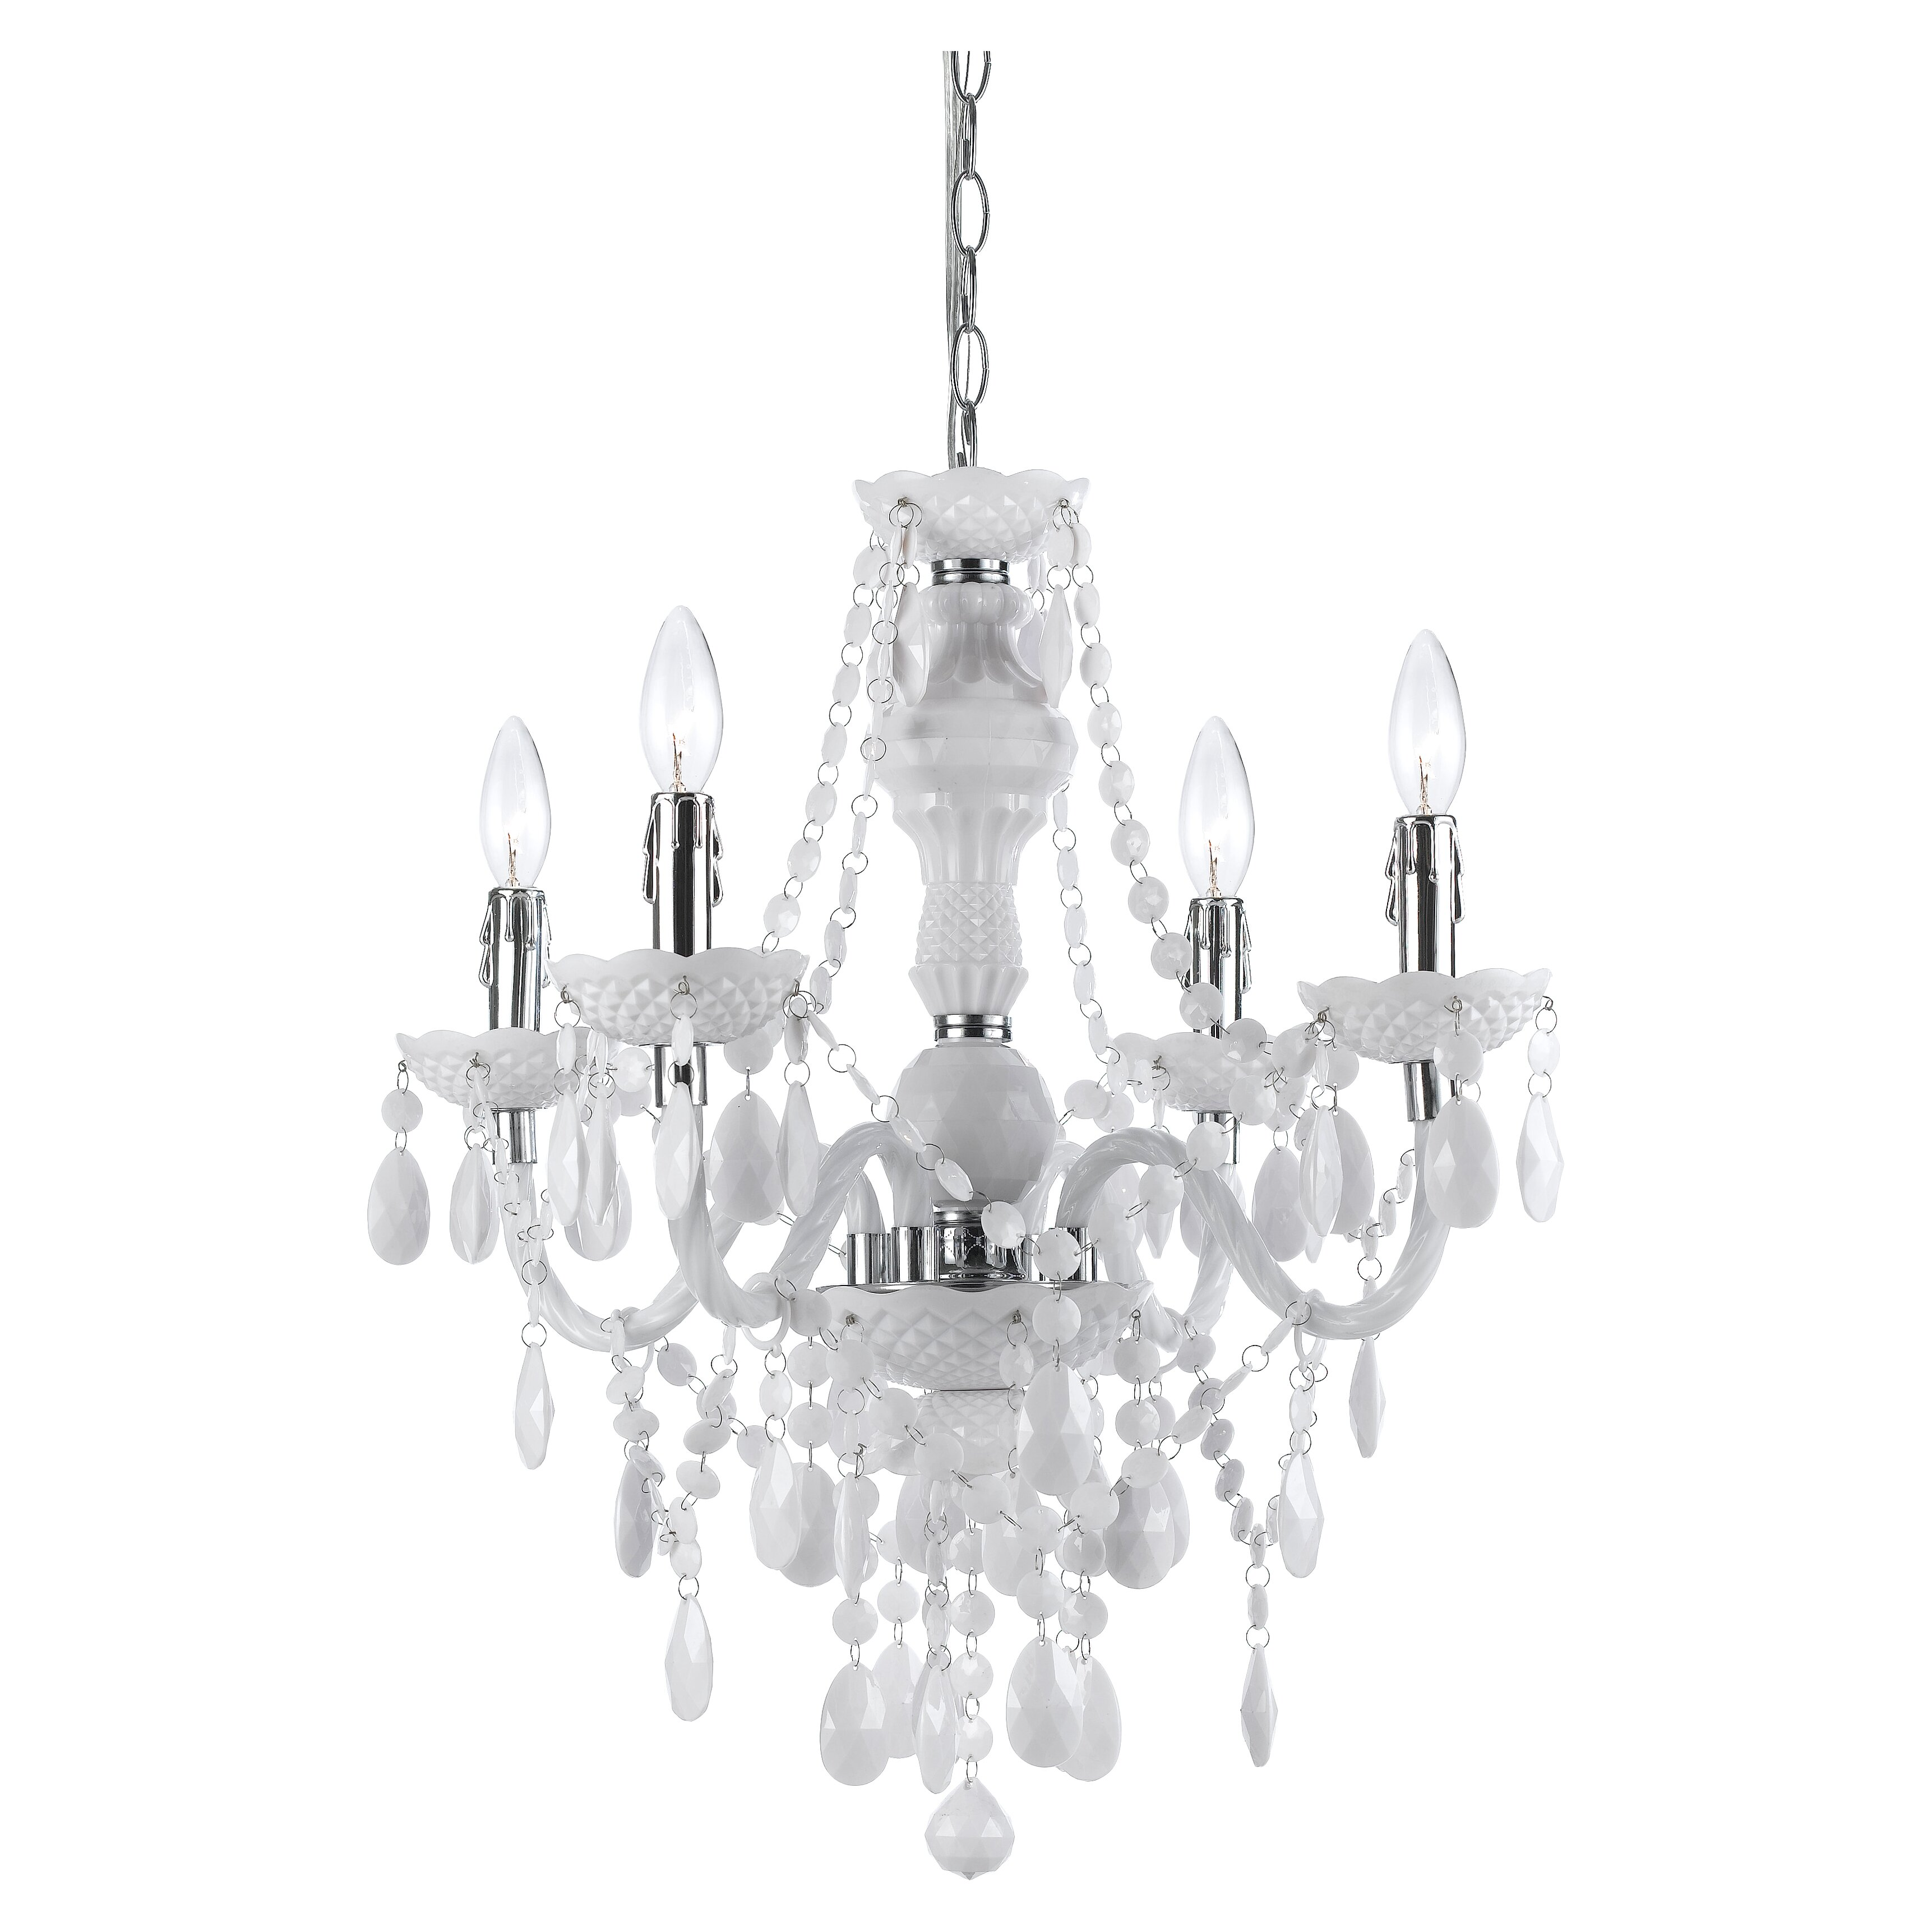 Chandeliers Youll Love – Mini Crystal Chandelier Under 100